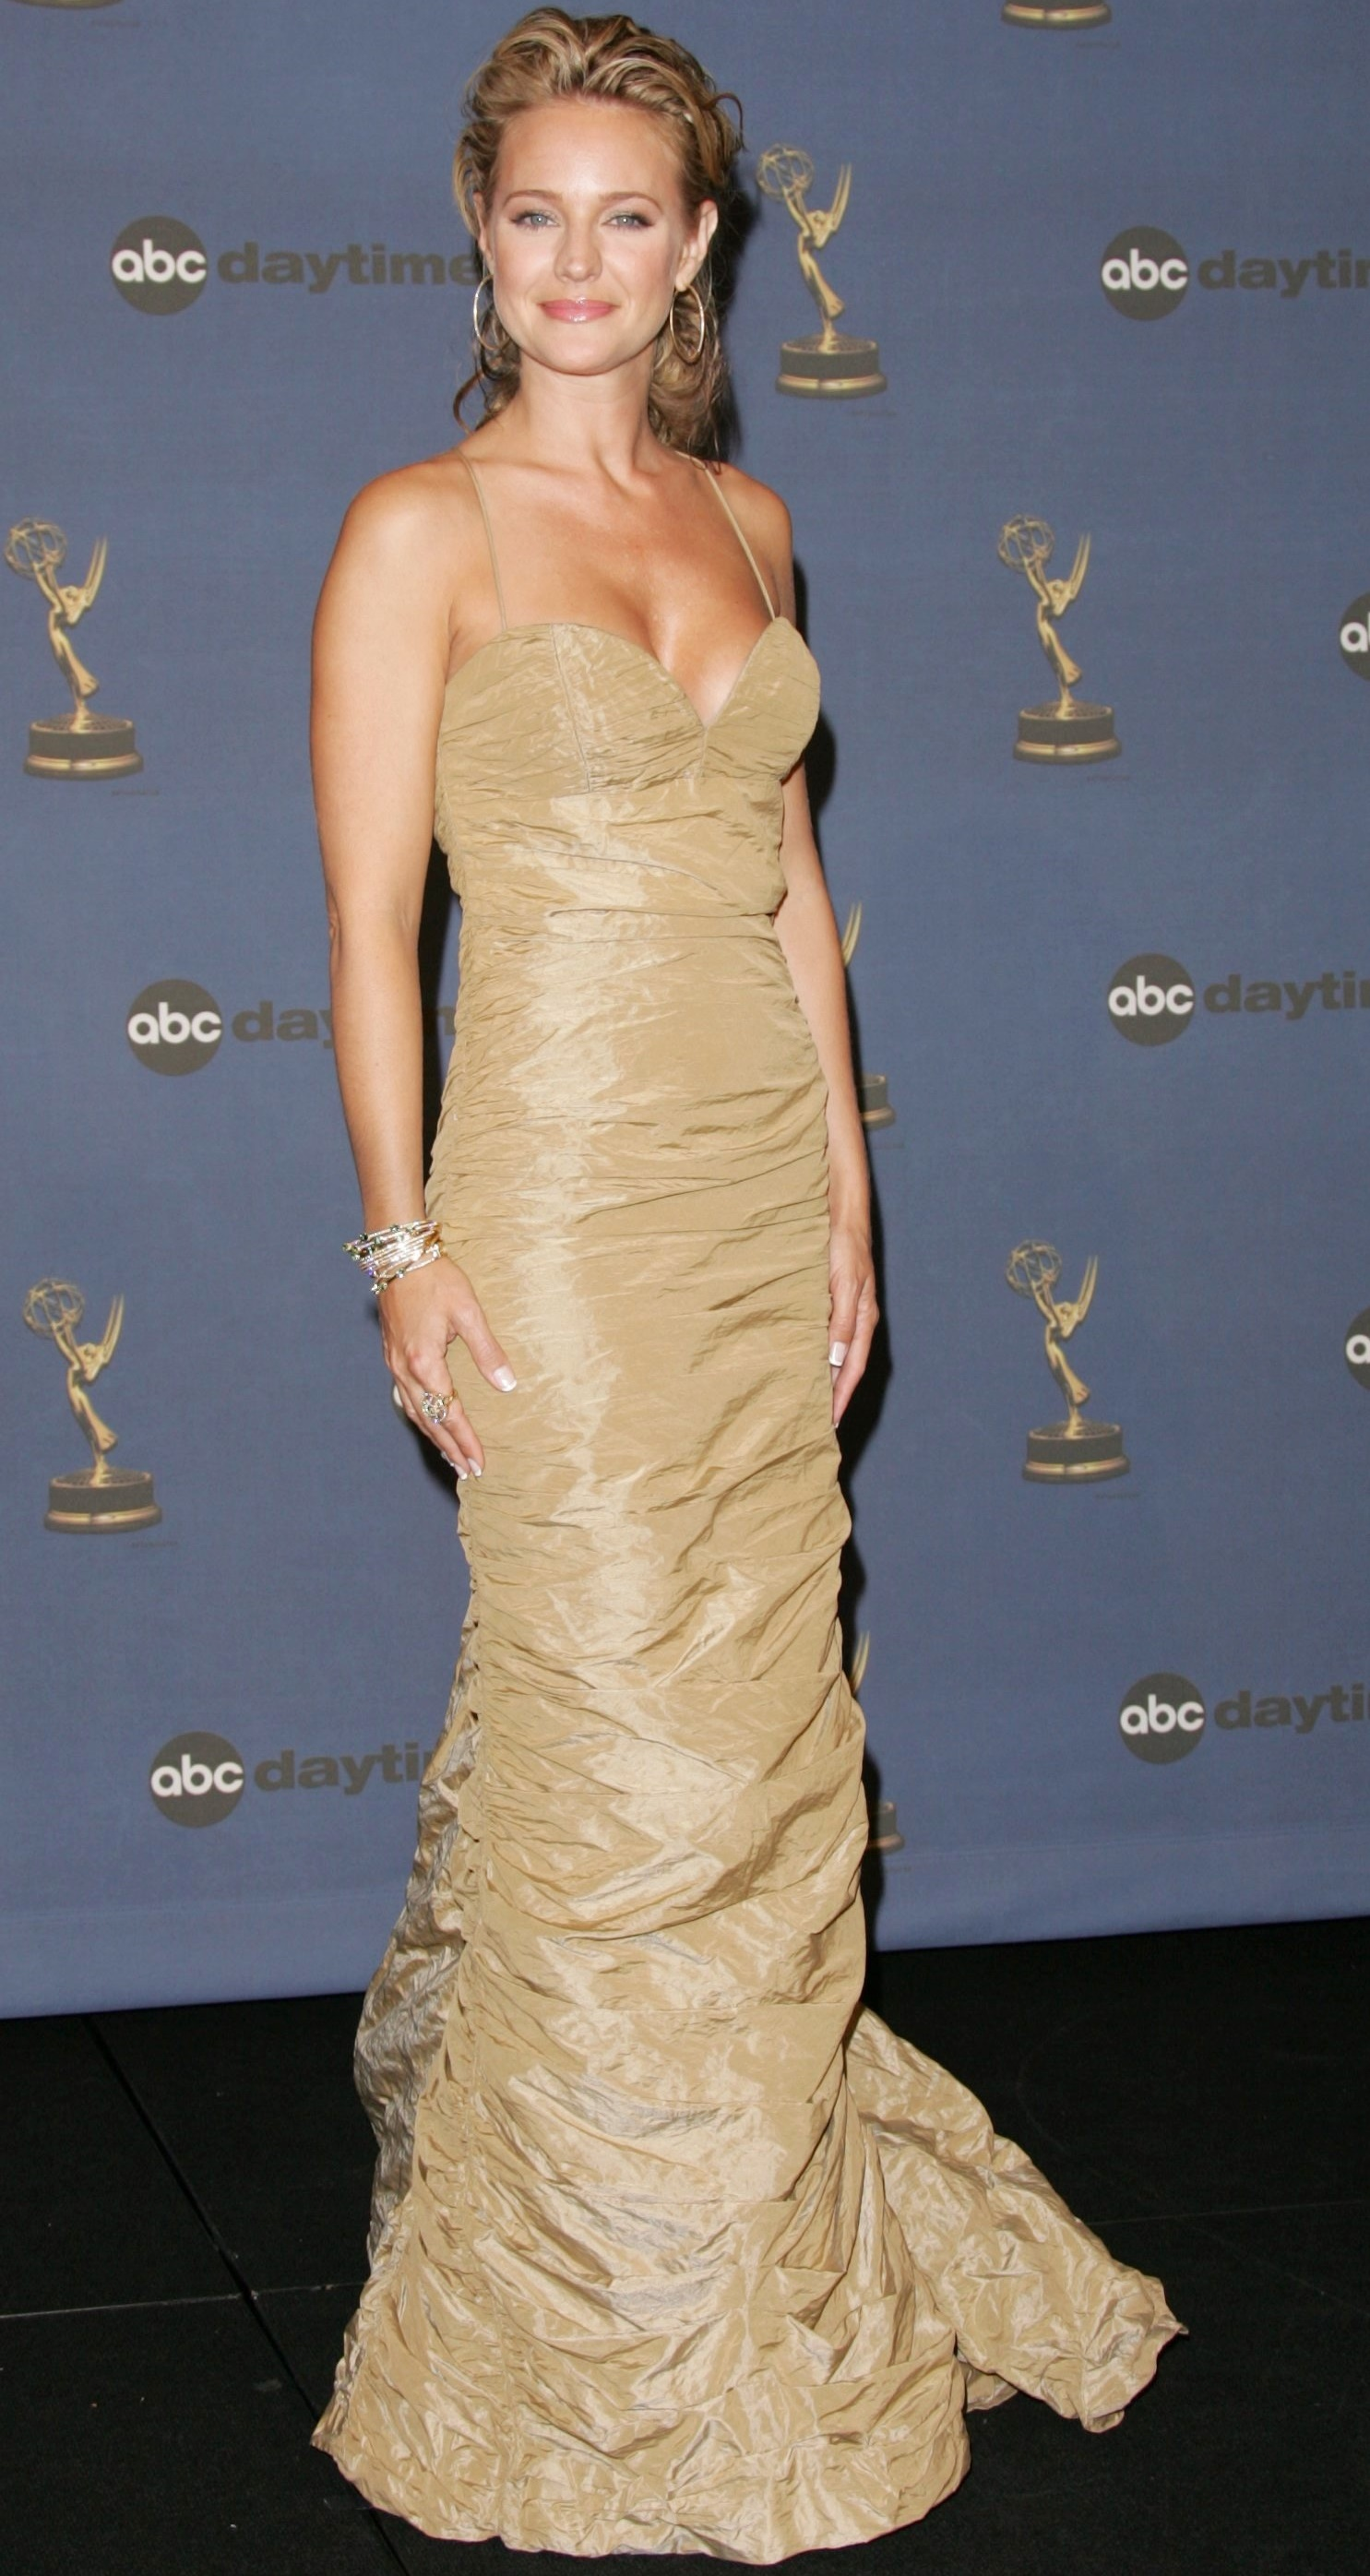 Sharon Case 33rd Annual Daytime Emmy Awards - Pressroom Kodak Theatre Hollywood 4/28/06